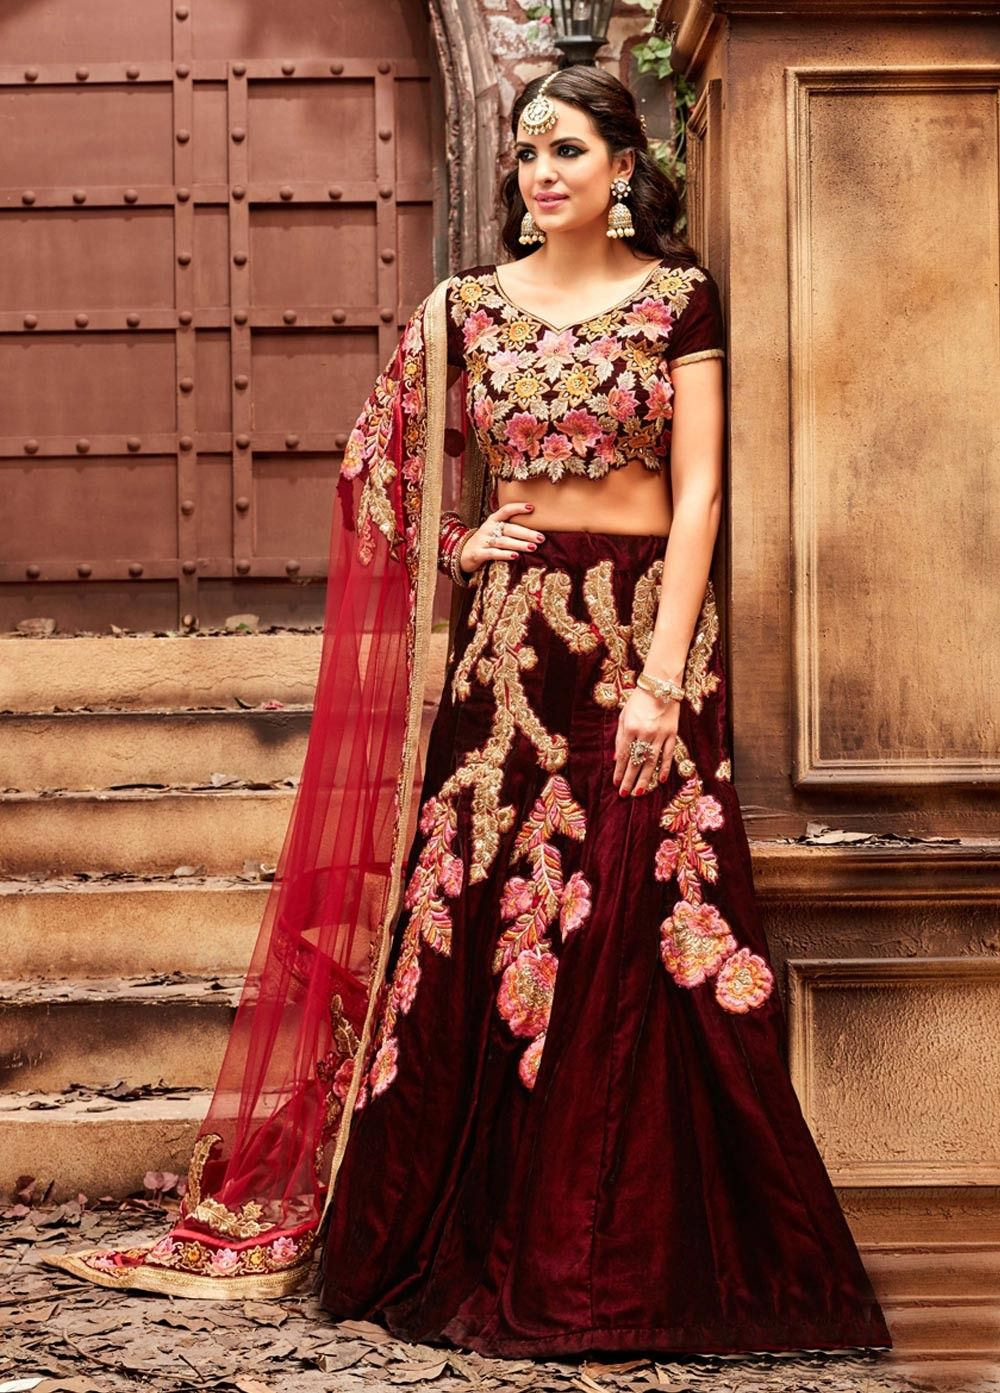 ade1614ffeb9 Shop Maroon color velvet wedding lehenga choli at kollybollyethnics online  from India and get free shipping offer